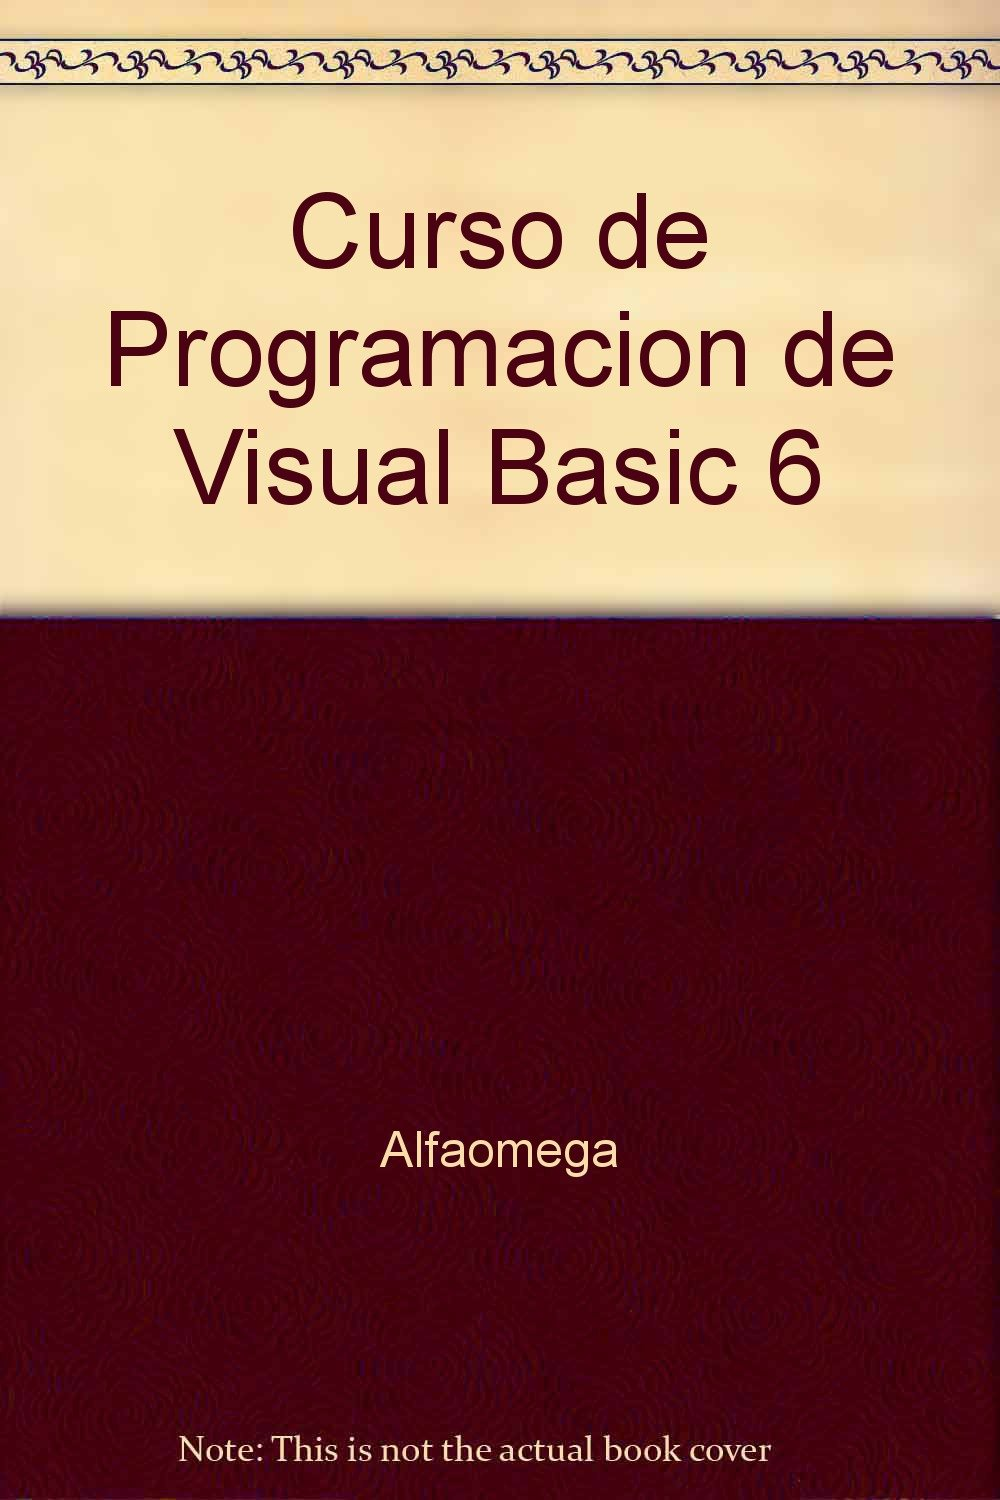 Read Online Curso de Programacion de Visual Basic 6 (Spanish Edition) PDF